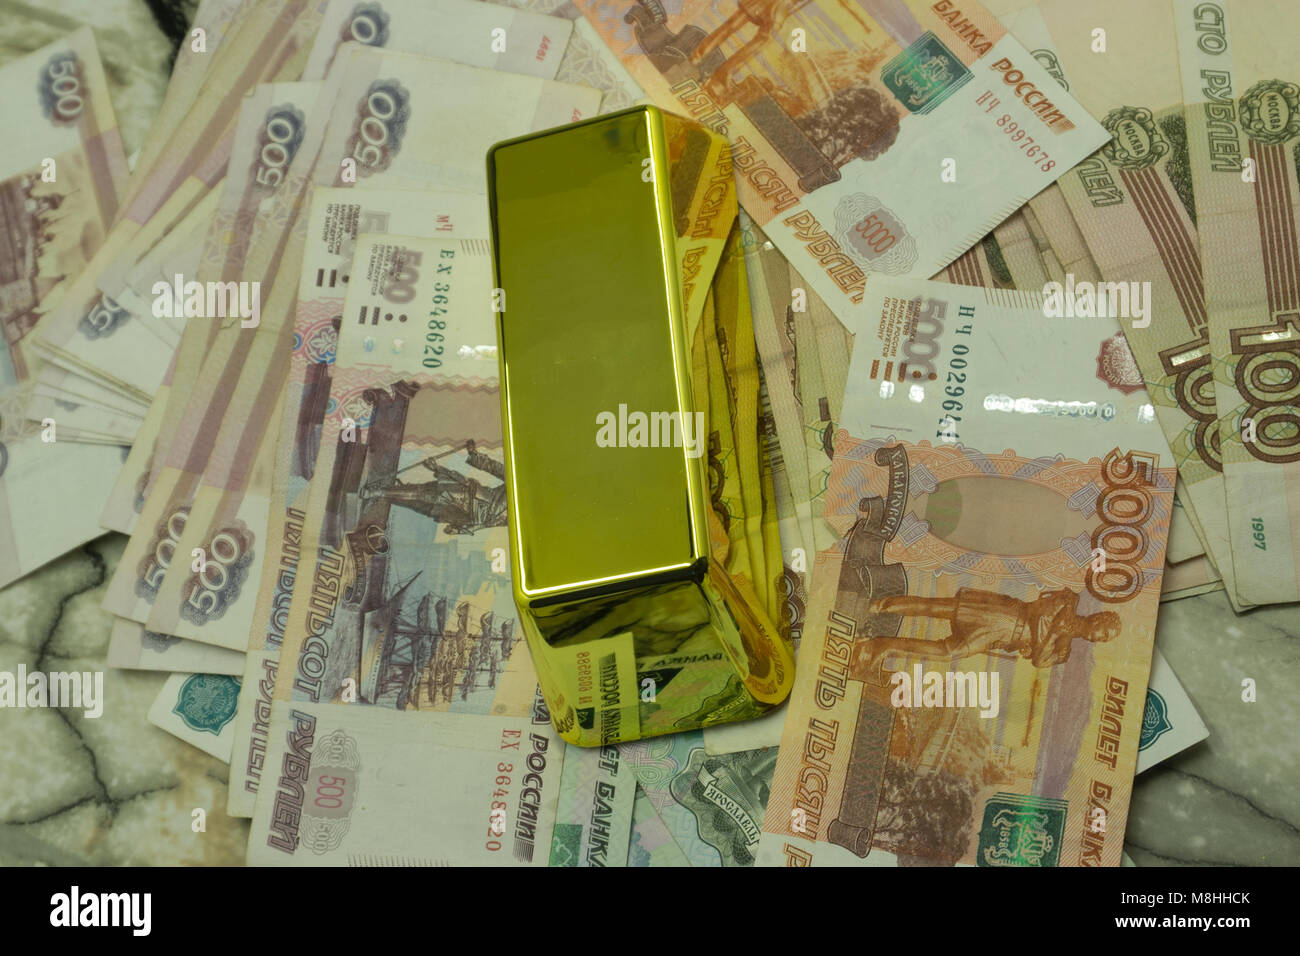 Background with money american hundred dollar bills, Russian ruble, Thai baht, new crypto currency golden bitcoin - Stock Image